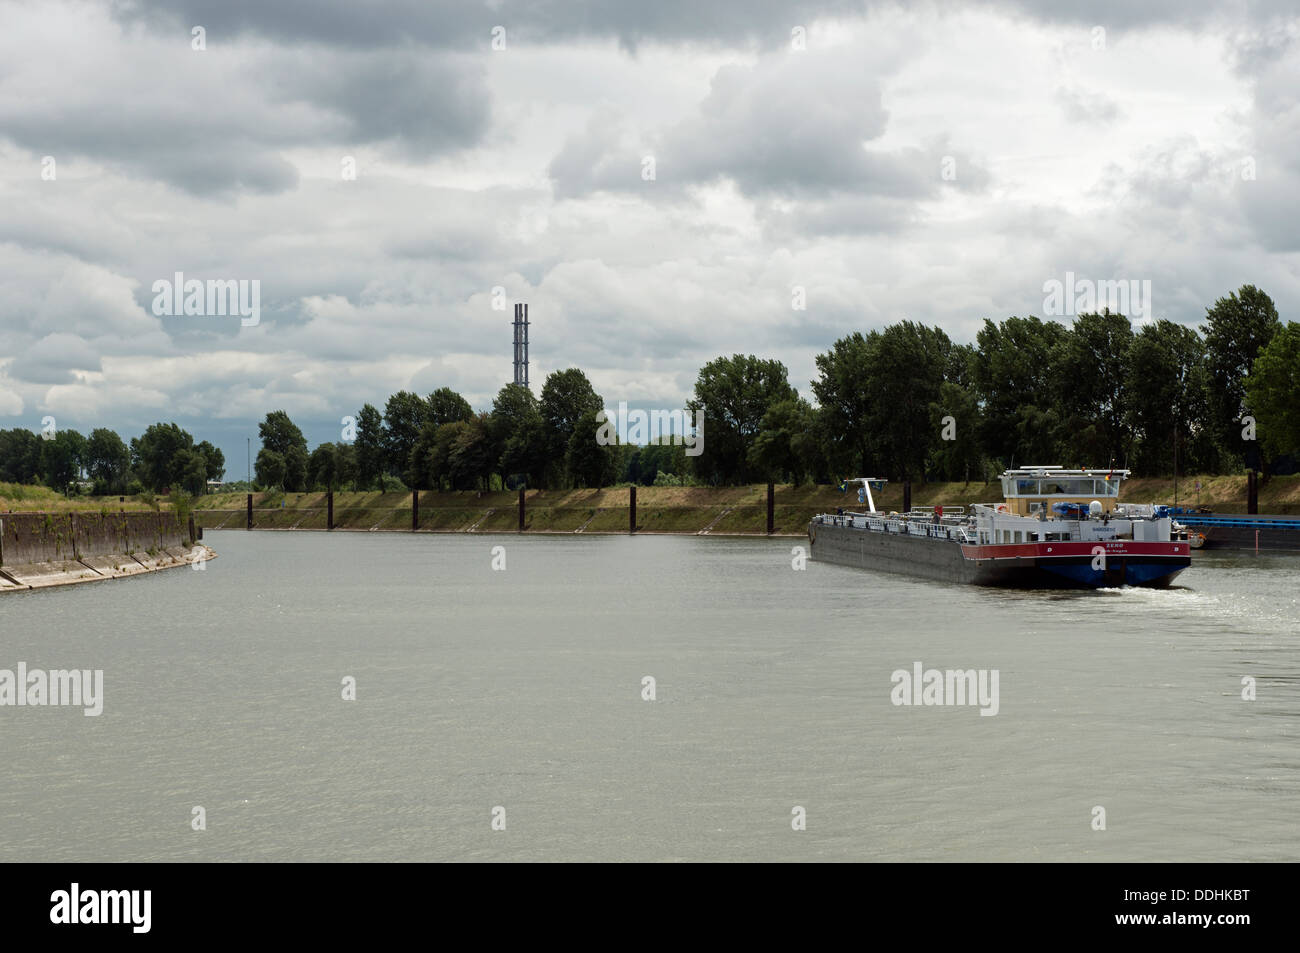 Oil-tanker barge on the river Ruhr, Duisburg, Germany. - Stock Image